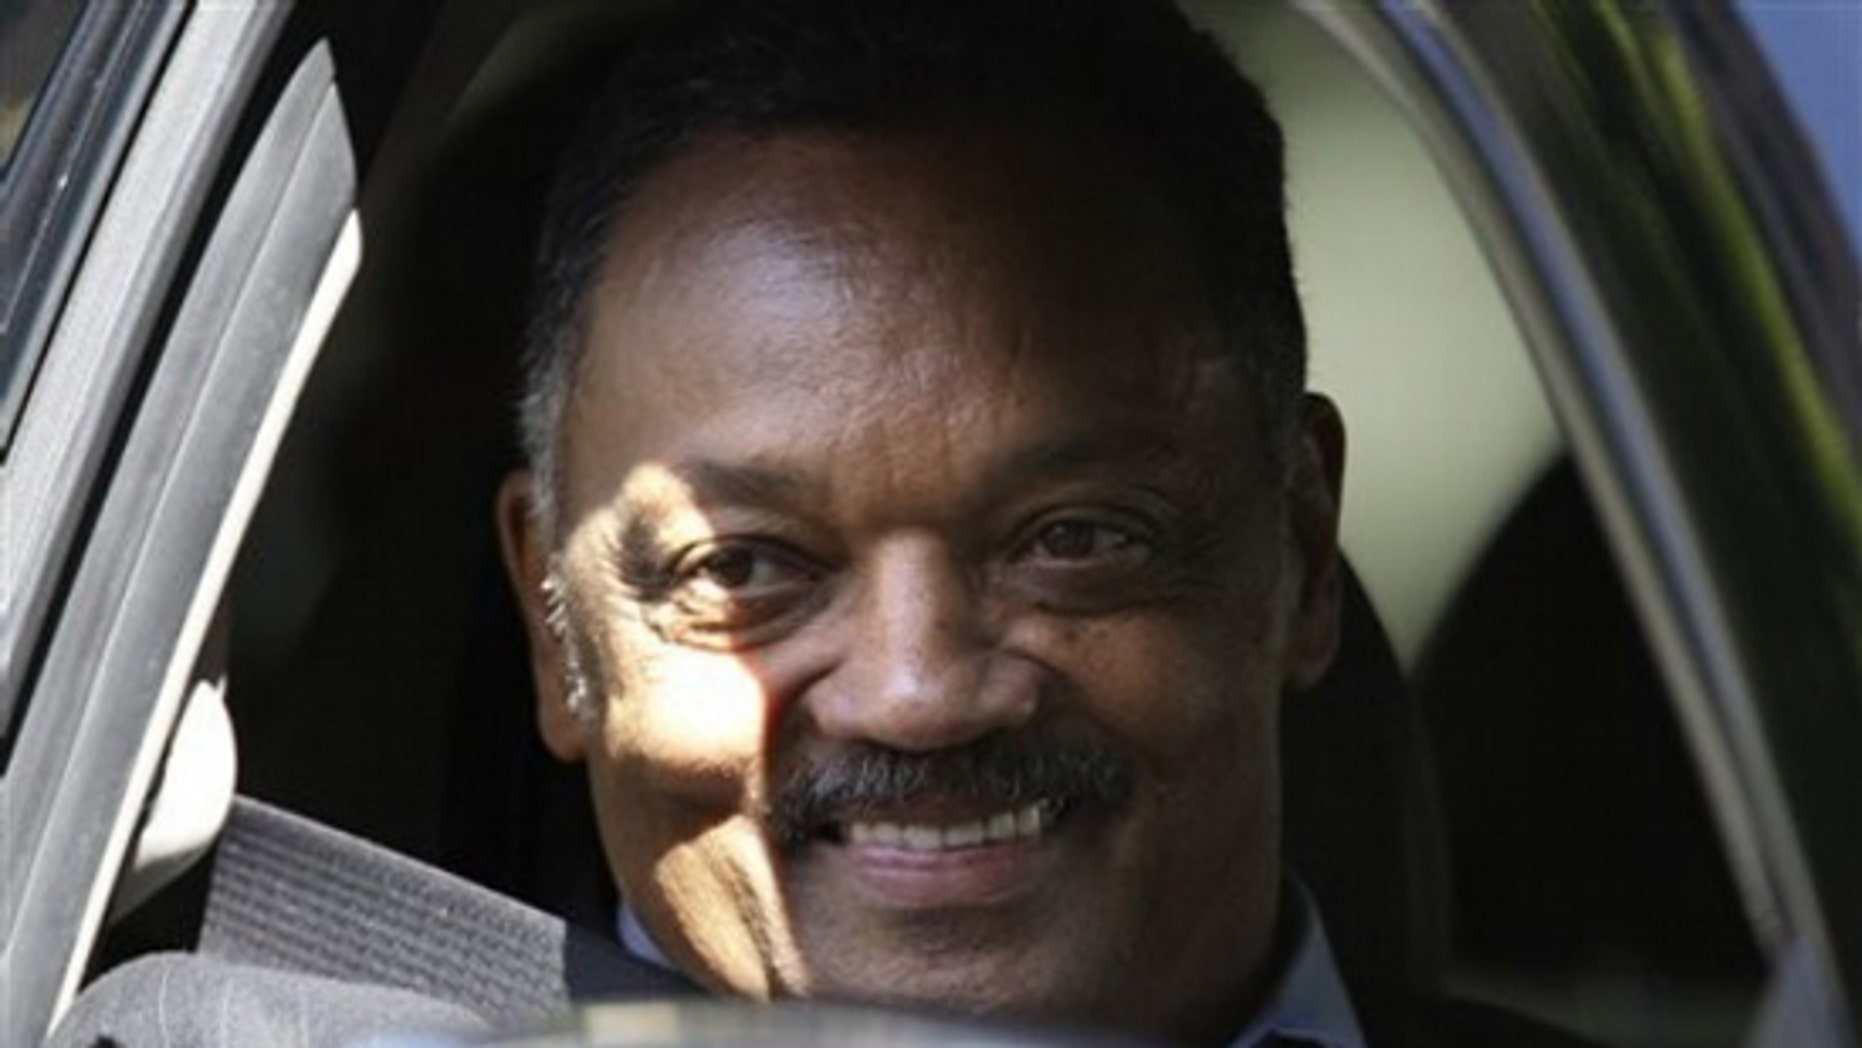 Rev. Jesse Jackson smiles at fans as he departs the Beverly Wilshire Hotel, Tuesday, July 7, 2009 in Beverly Hills after attending the Michael Jackson memorial in Los Angeles at the Staples Center. (AP Photo/Carolyn Kaster)